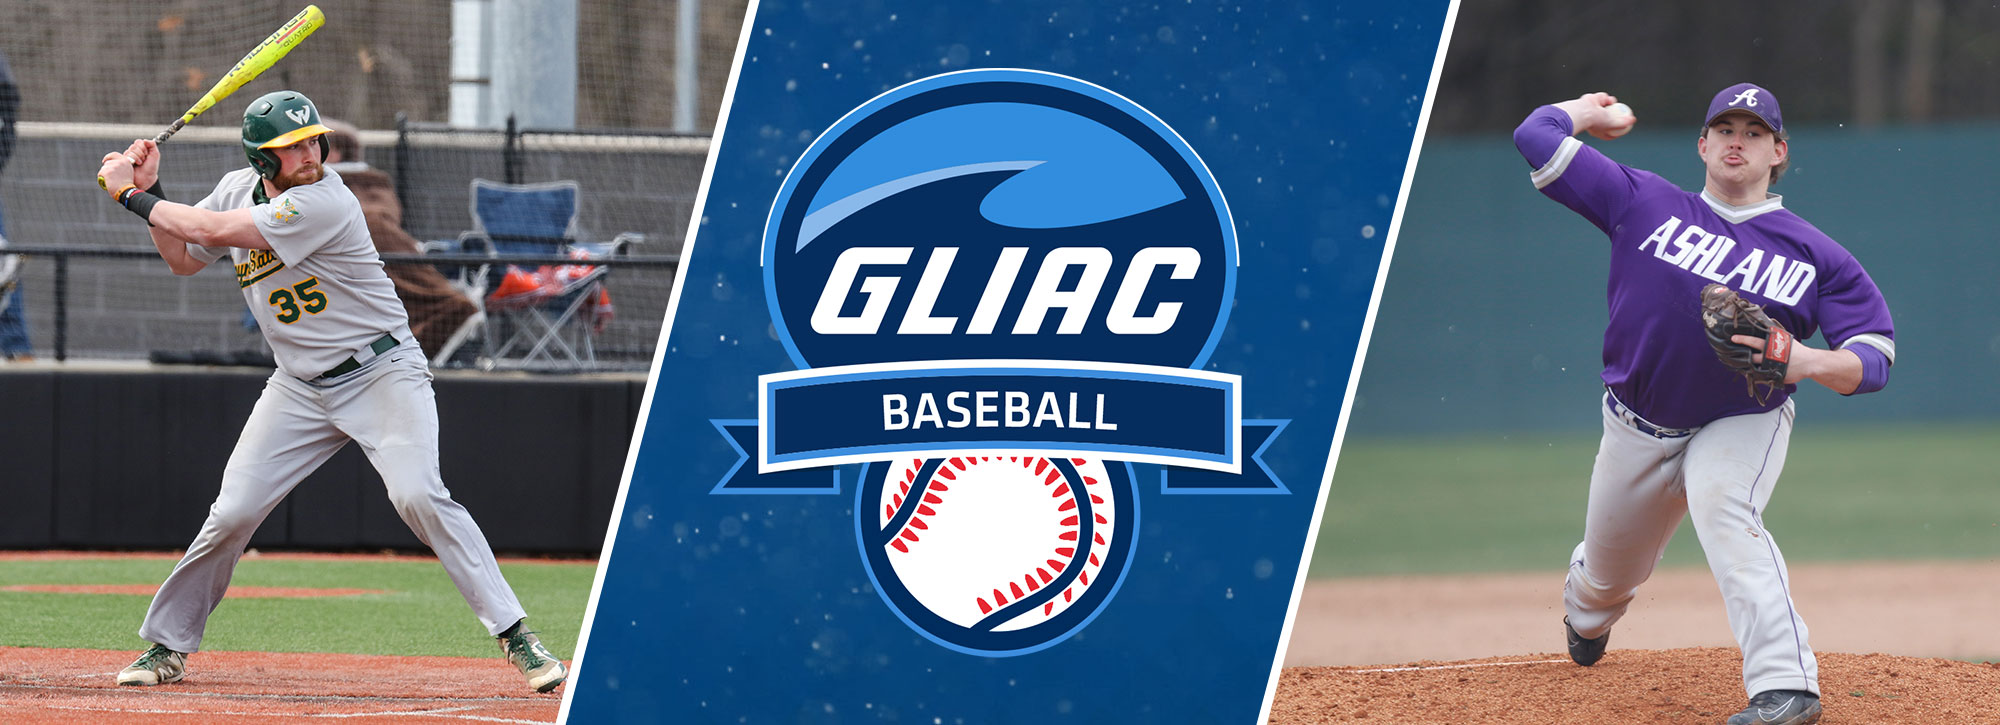 Wayne State's Kelly, Ashland's Peters Collect GLIAC Baseball Players of the Week Honors